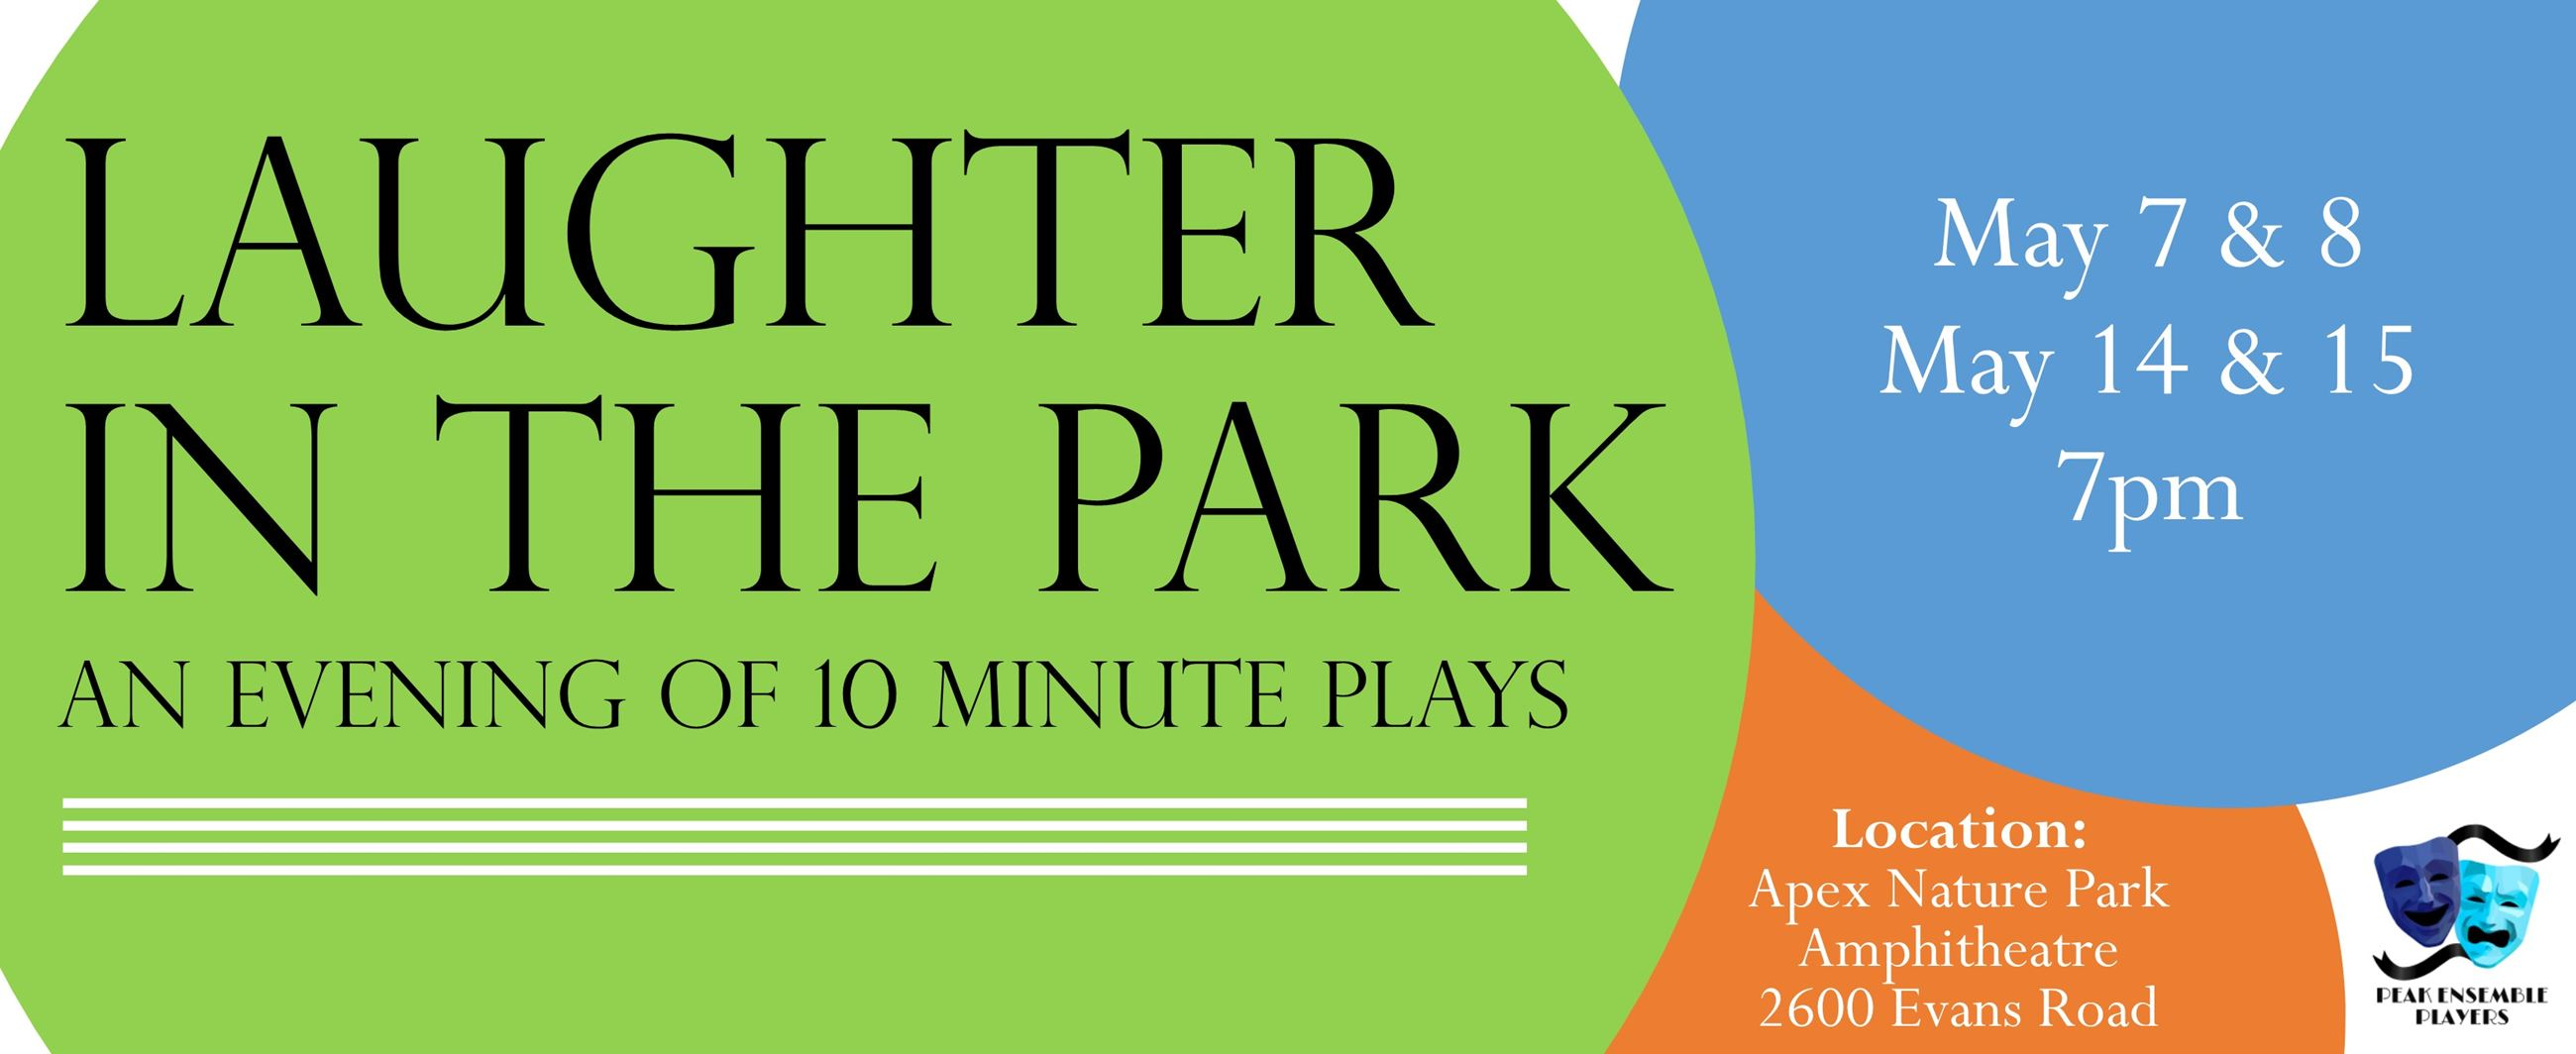 Laughter In The Park BANNER